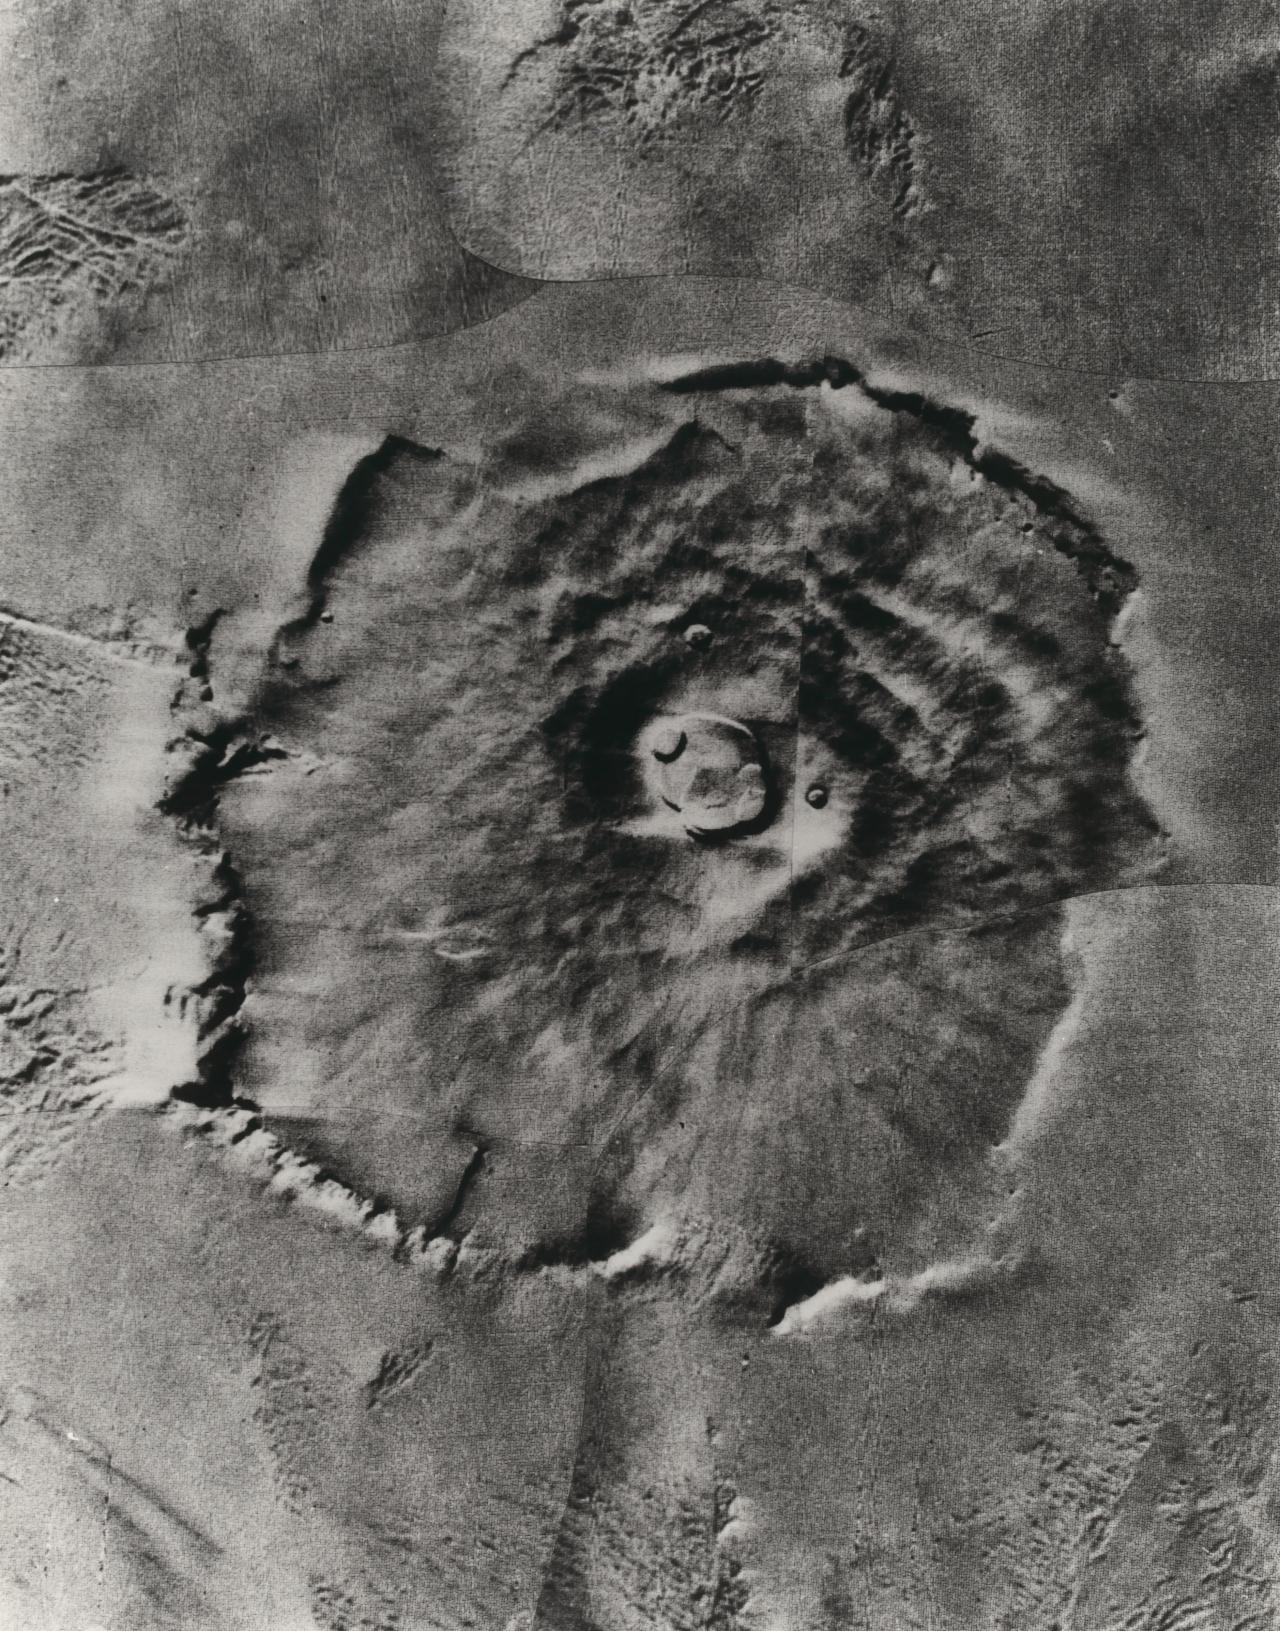 Mars. Nix Olympica; a gigantic volcanic mountain photographed by Mariner 9 in late January